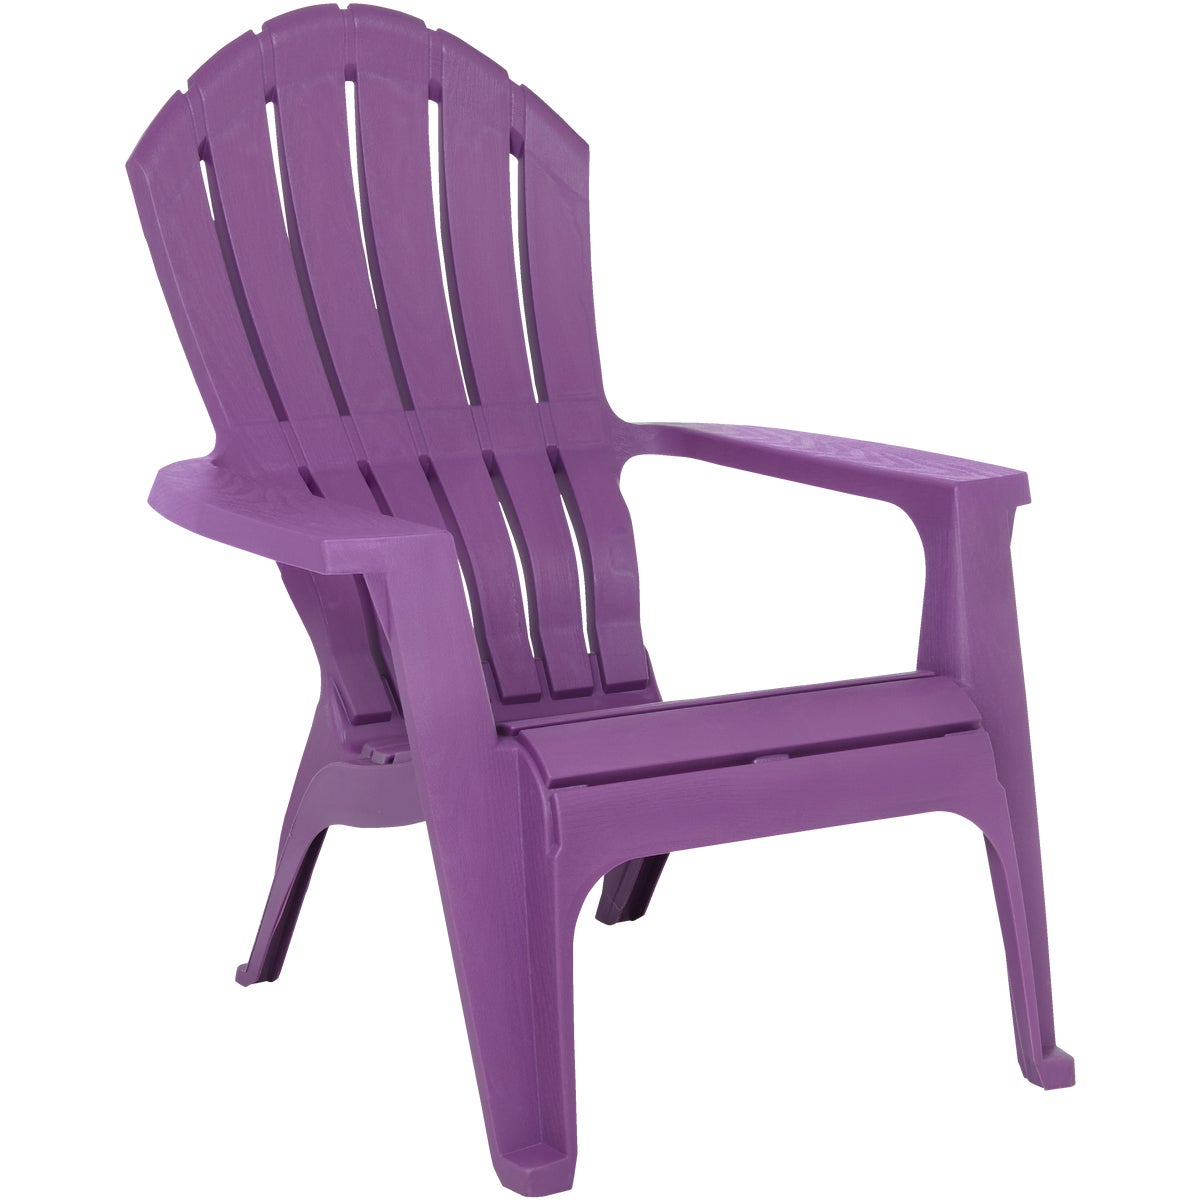 BRT VIOLET ADIRONDACK - 8371-12-4708 by Adams Mfg Patio Furn